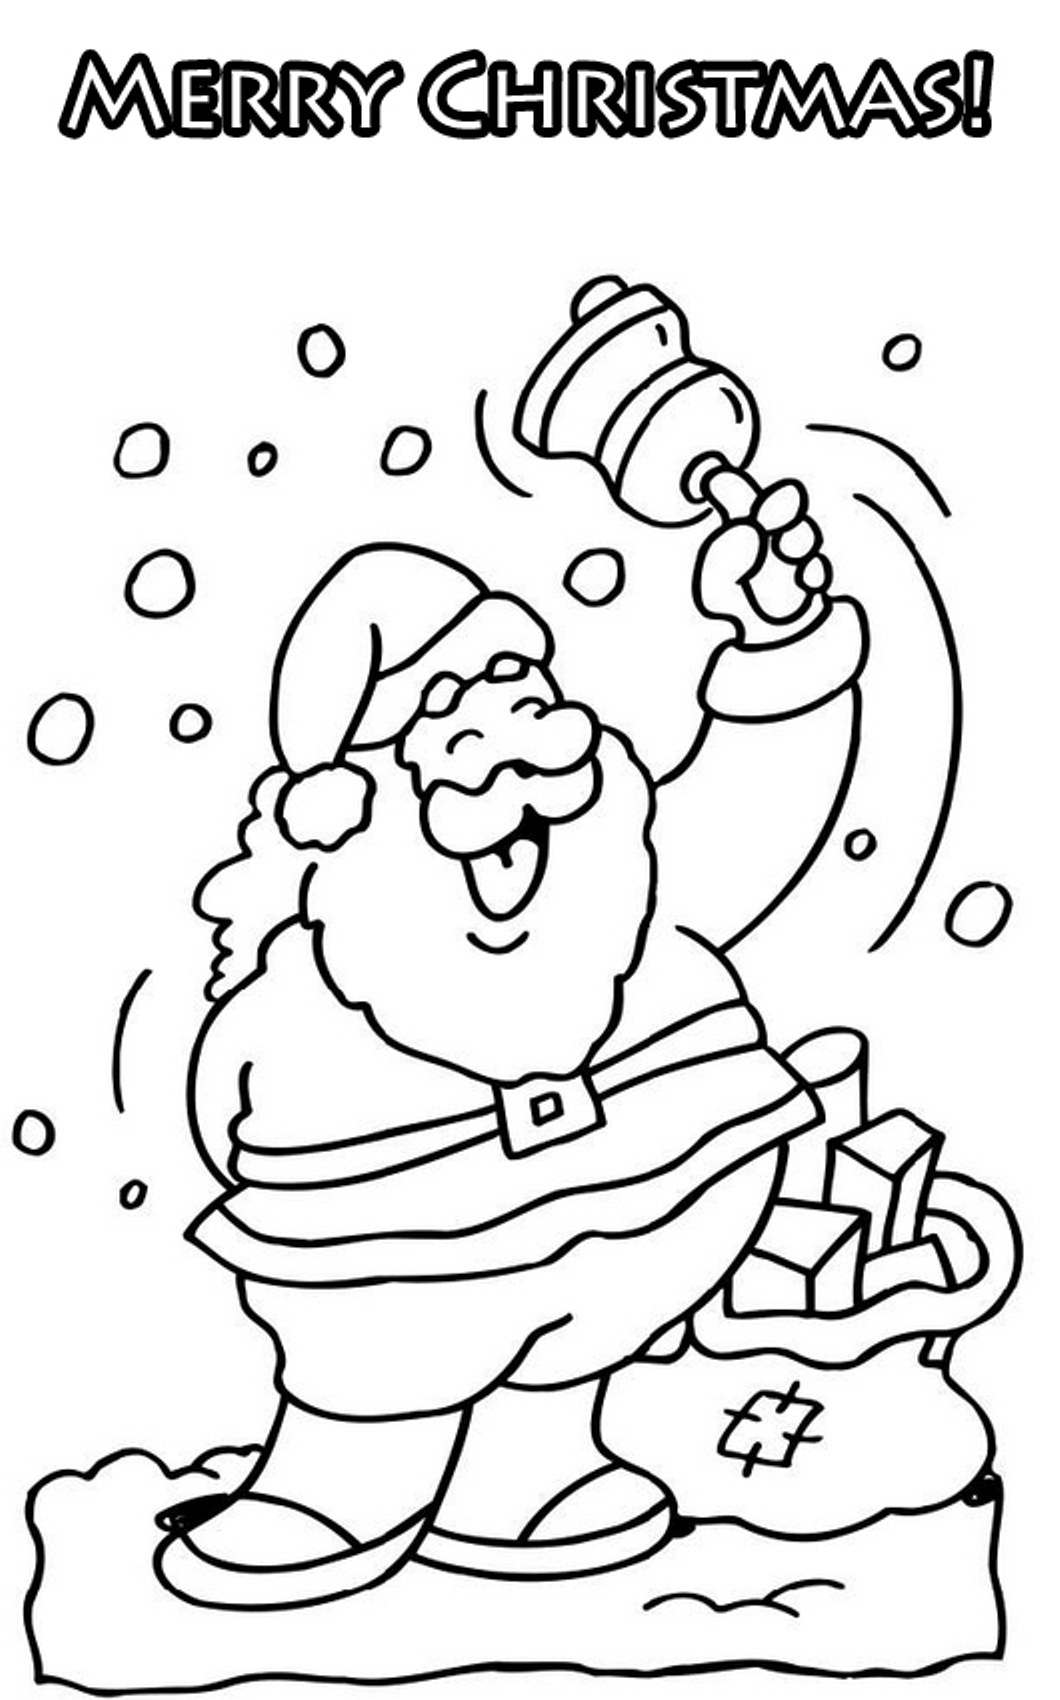 christmas coloring page happy christmas coloring pages download and print for free page christmas coloring